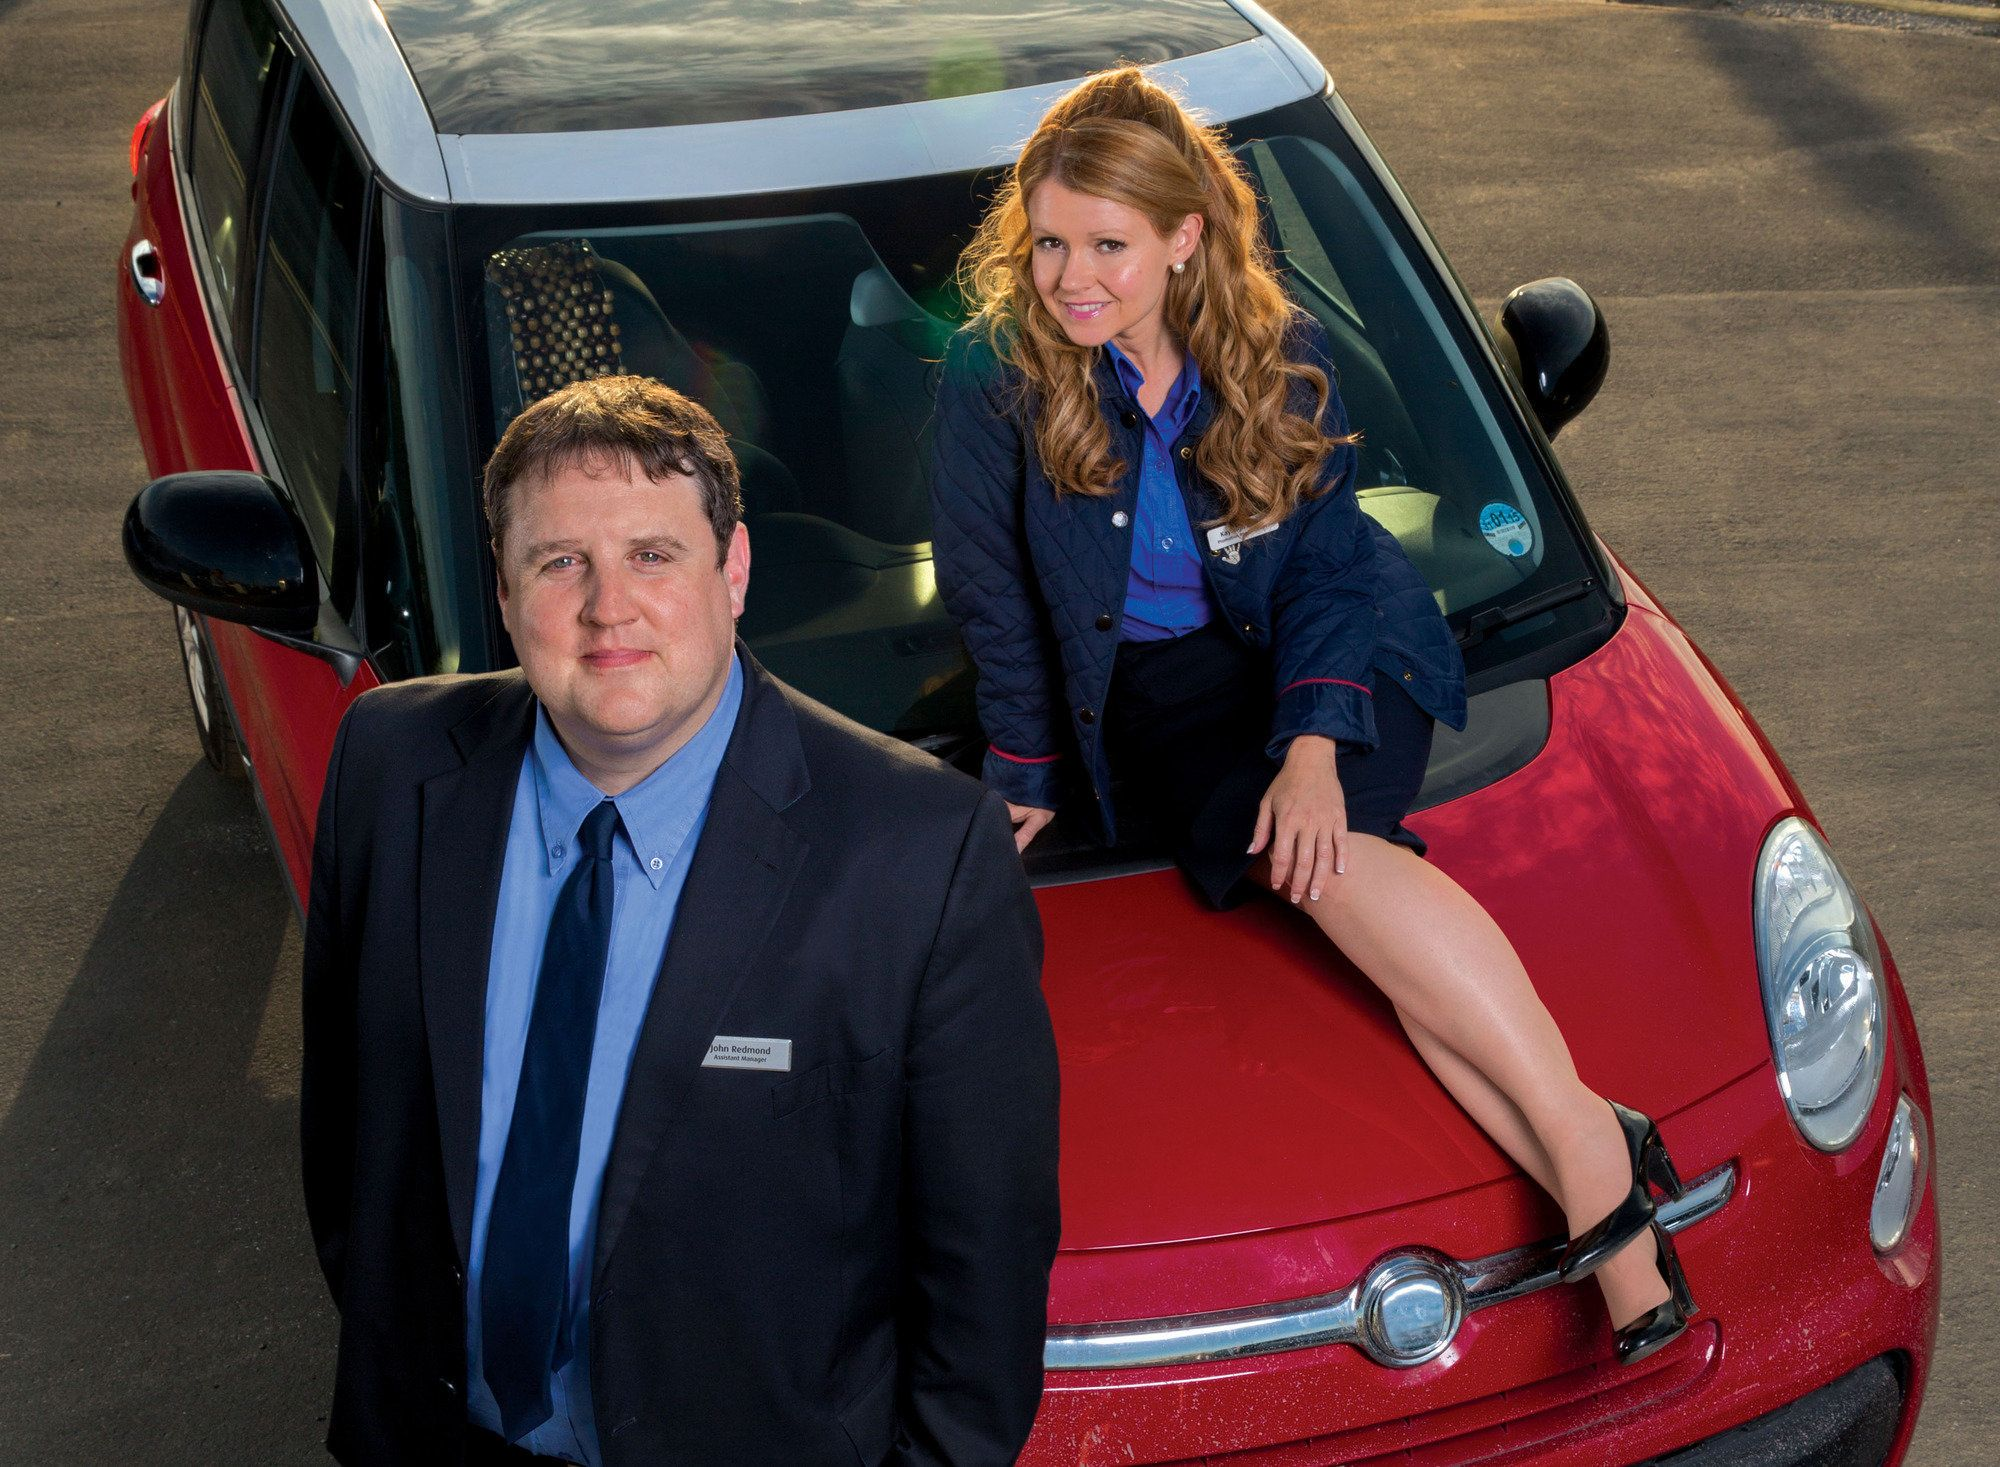 'Car Share' won Best Comedy at the